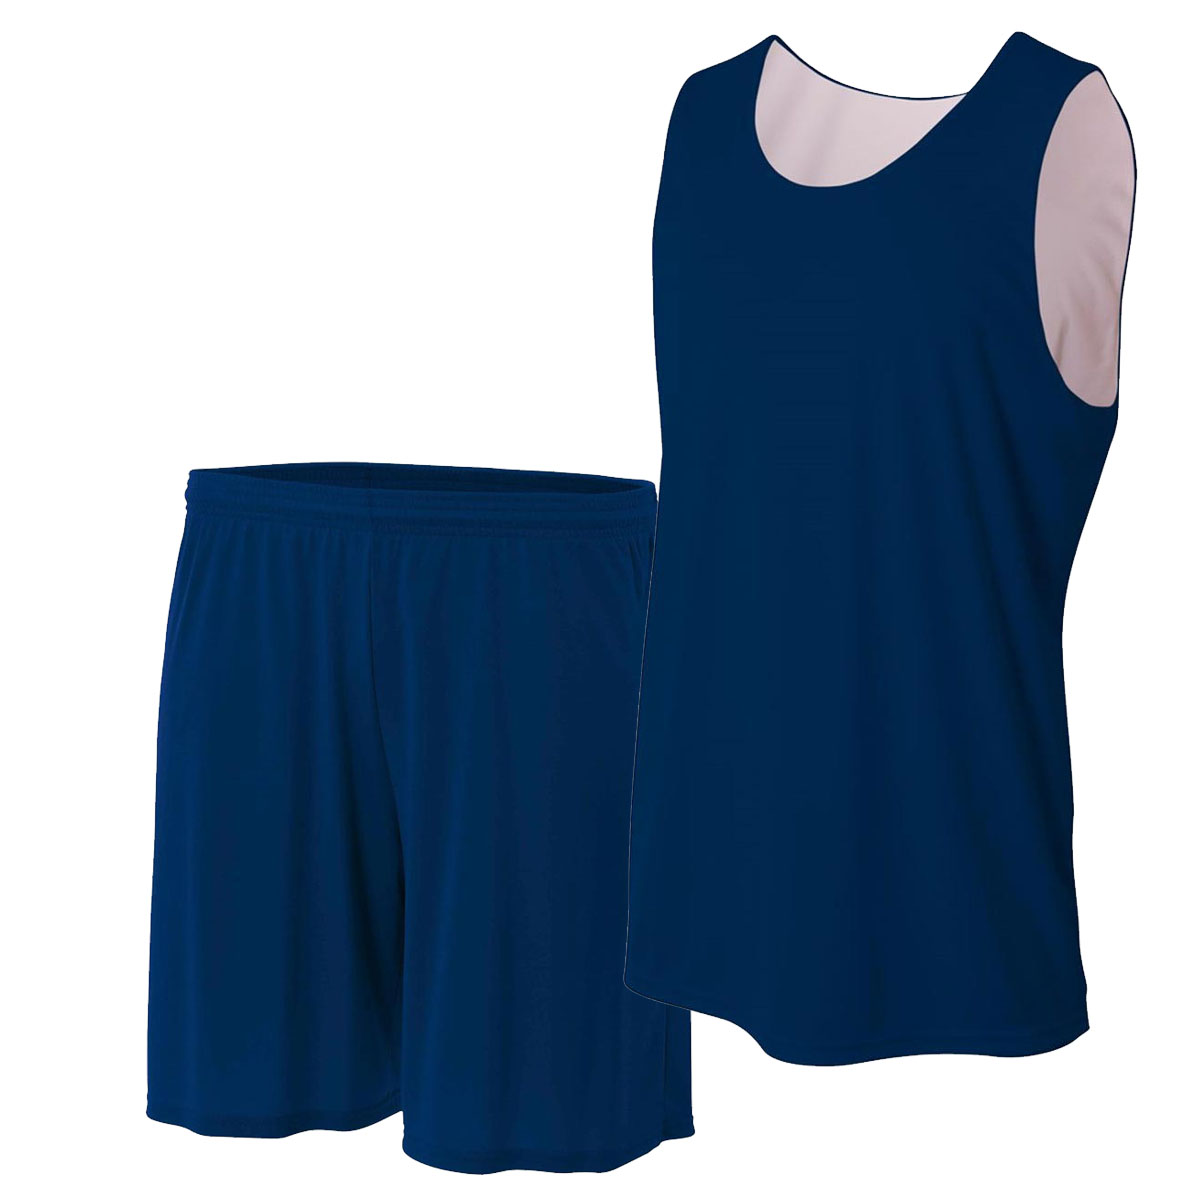 Reversible Basketball Uniforms Manufacturers in Nashik